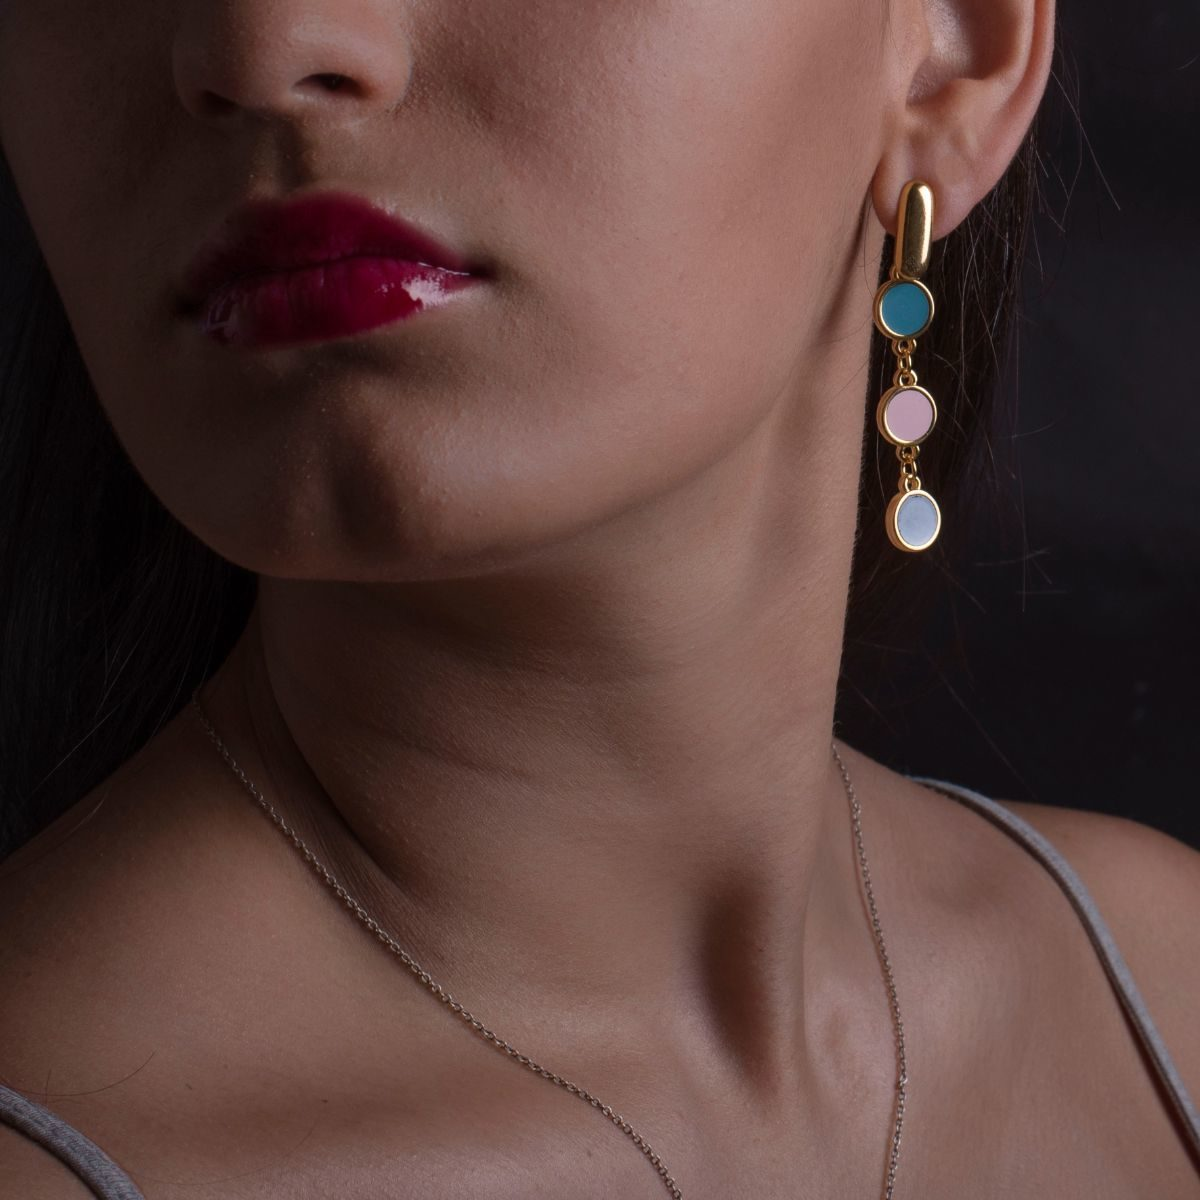 A Coruña long earring with three round pieces finished in gold and lacquered in different colors